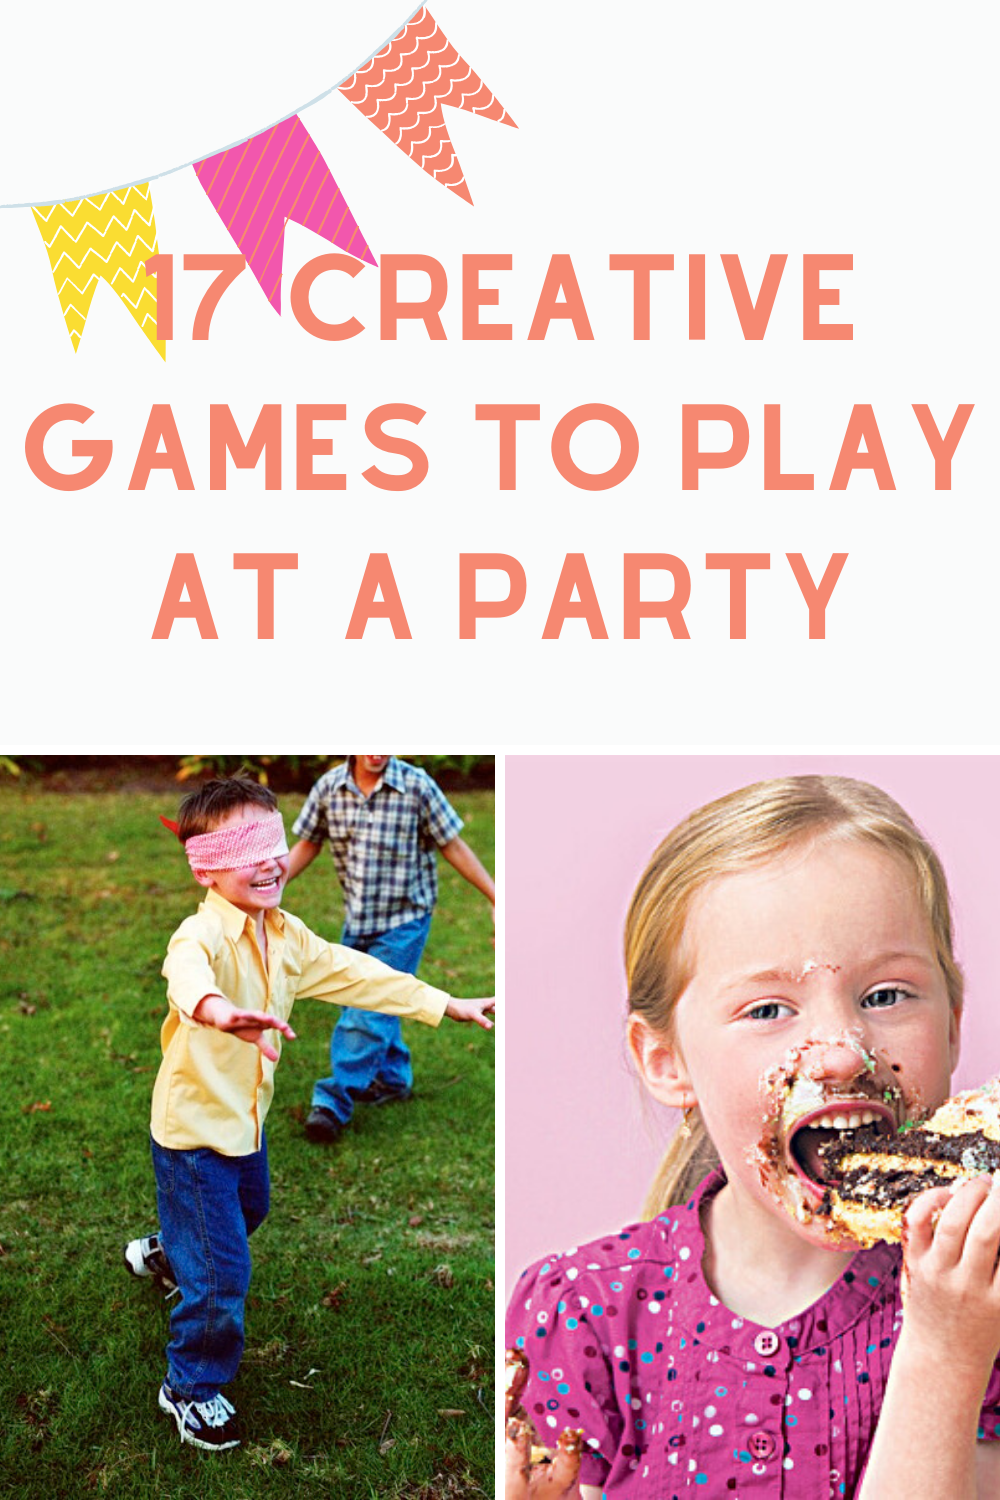 Creative game to play at a party